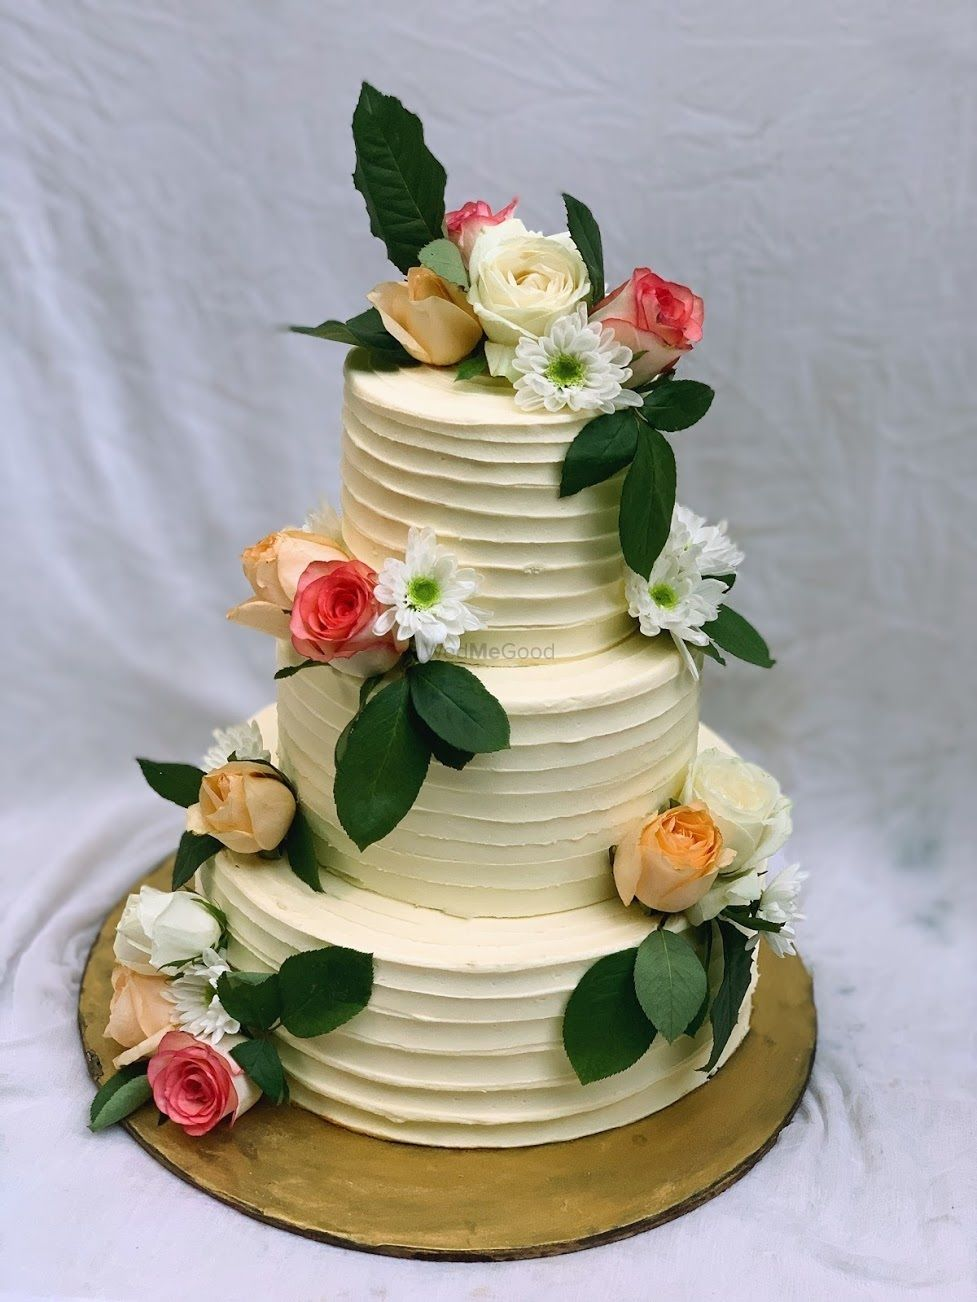 Photo By The Cake Company - Cake